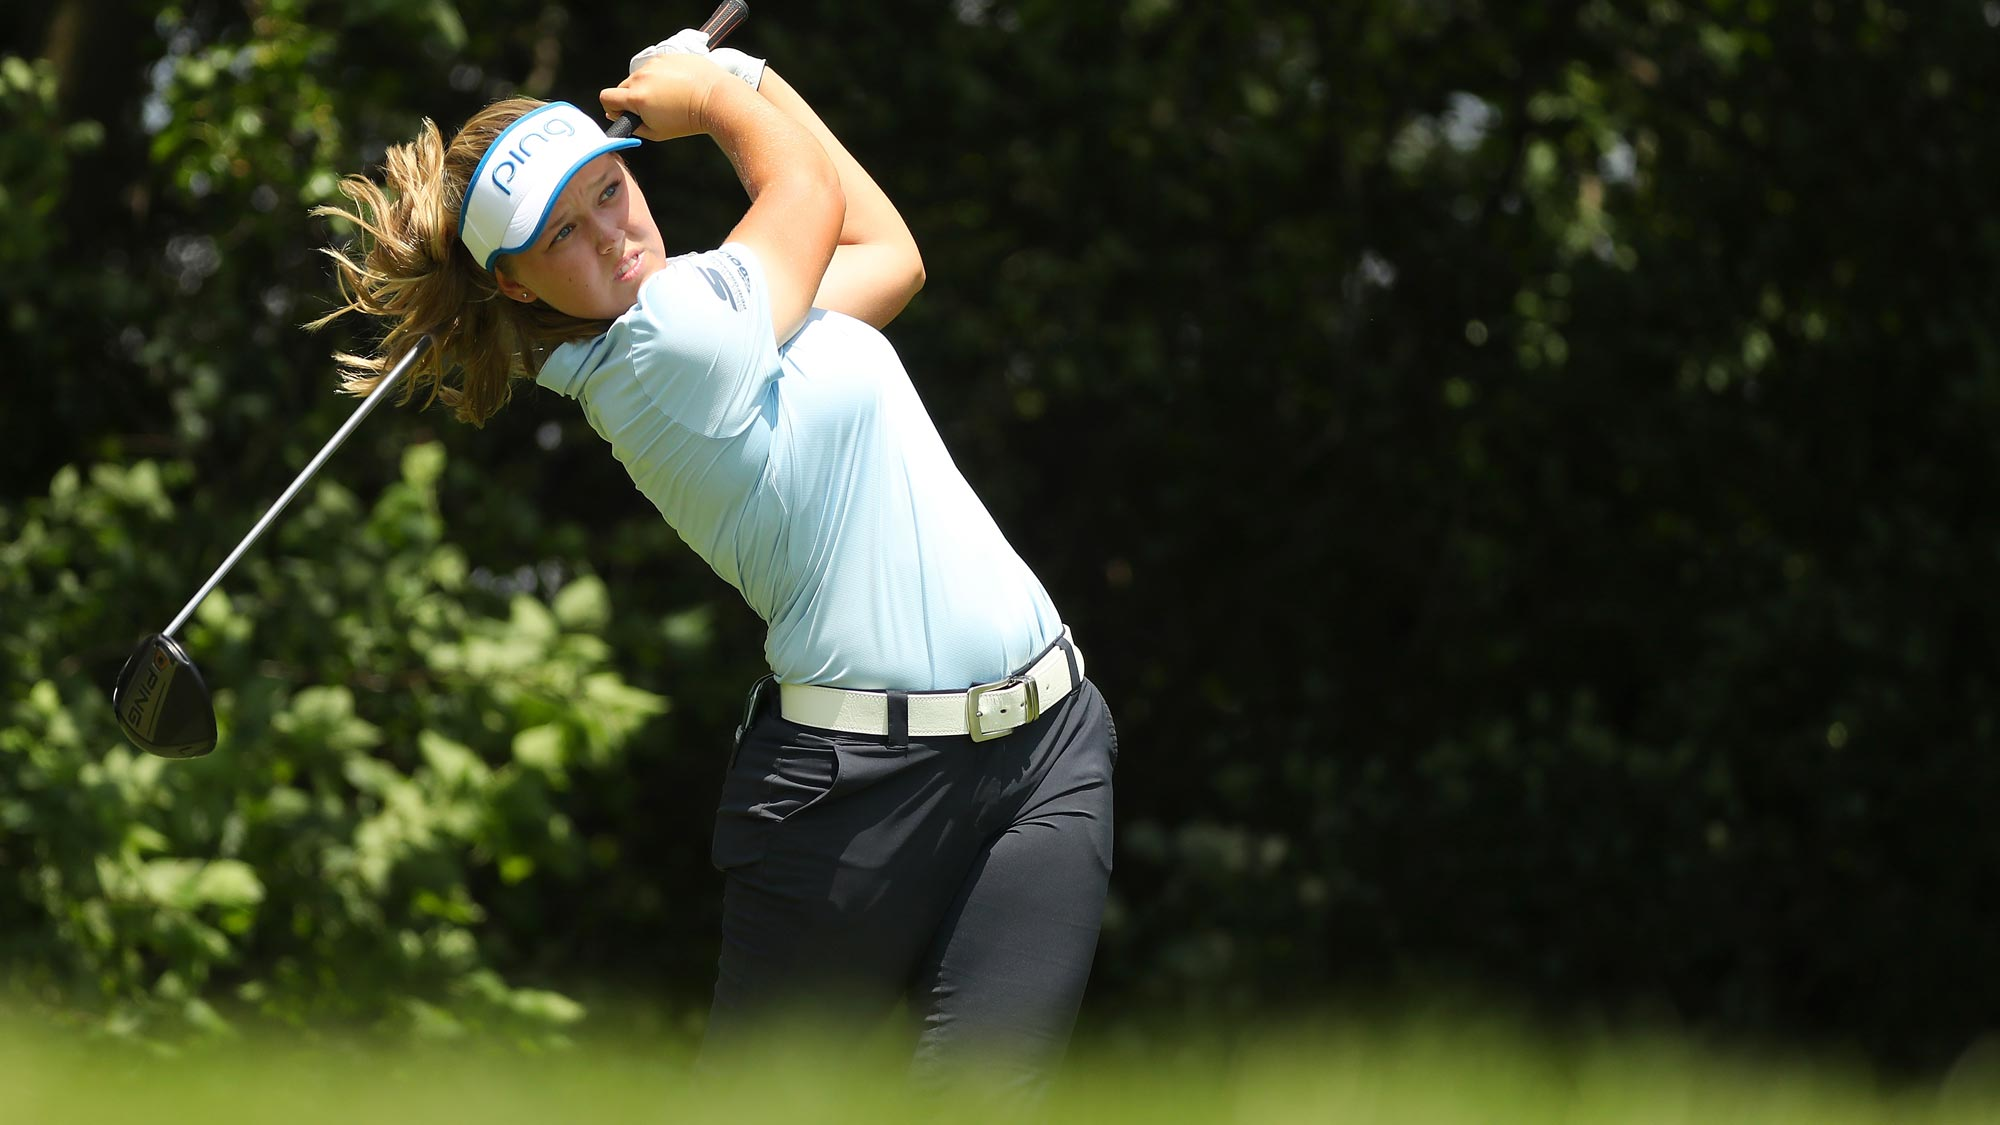 Brooke Henderson watches her drive on the fourth hole during the third round of the 2018 KPMG Women's PGA Championship